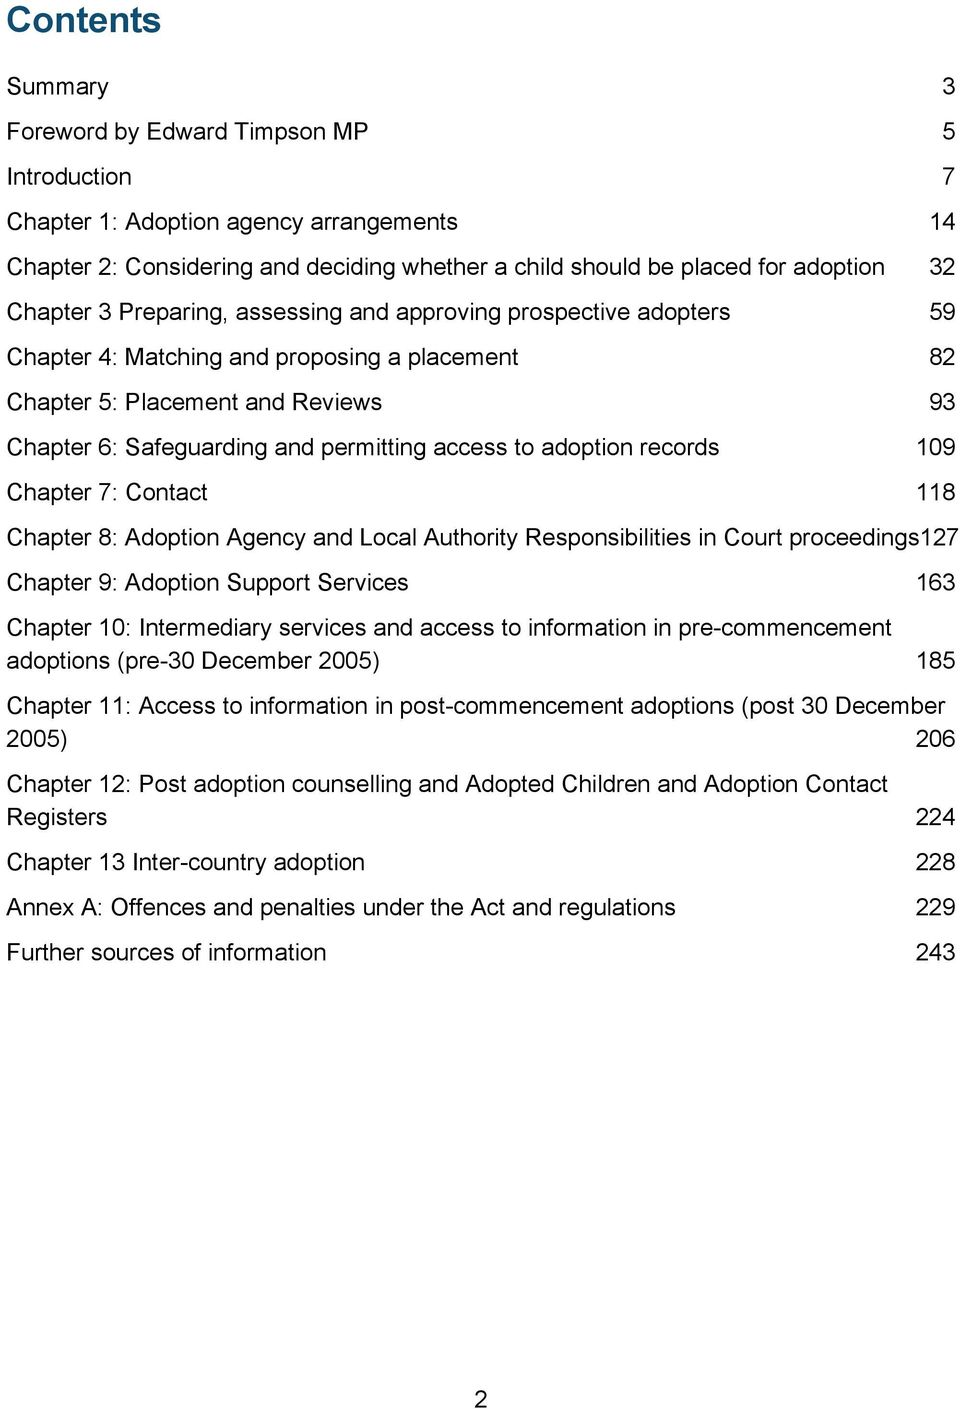 to adoption records 109 Chapter 7: Contact 118 Chapter 8: Adoption Agency and Local Authority Responsibilities in Court proceedings127 Chapter 9: Adoption Support Services 163 Chapter 10: